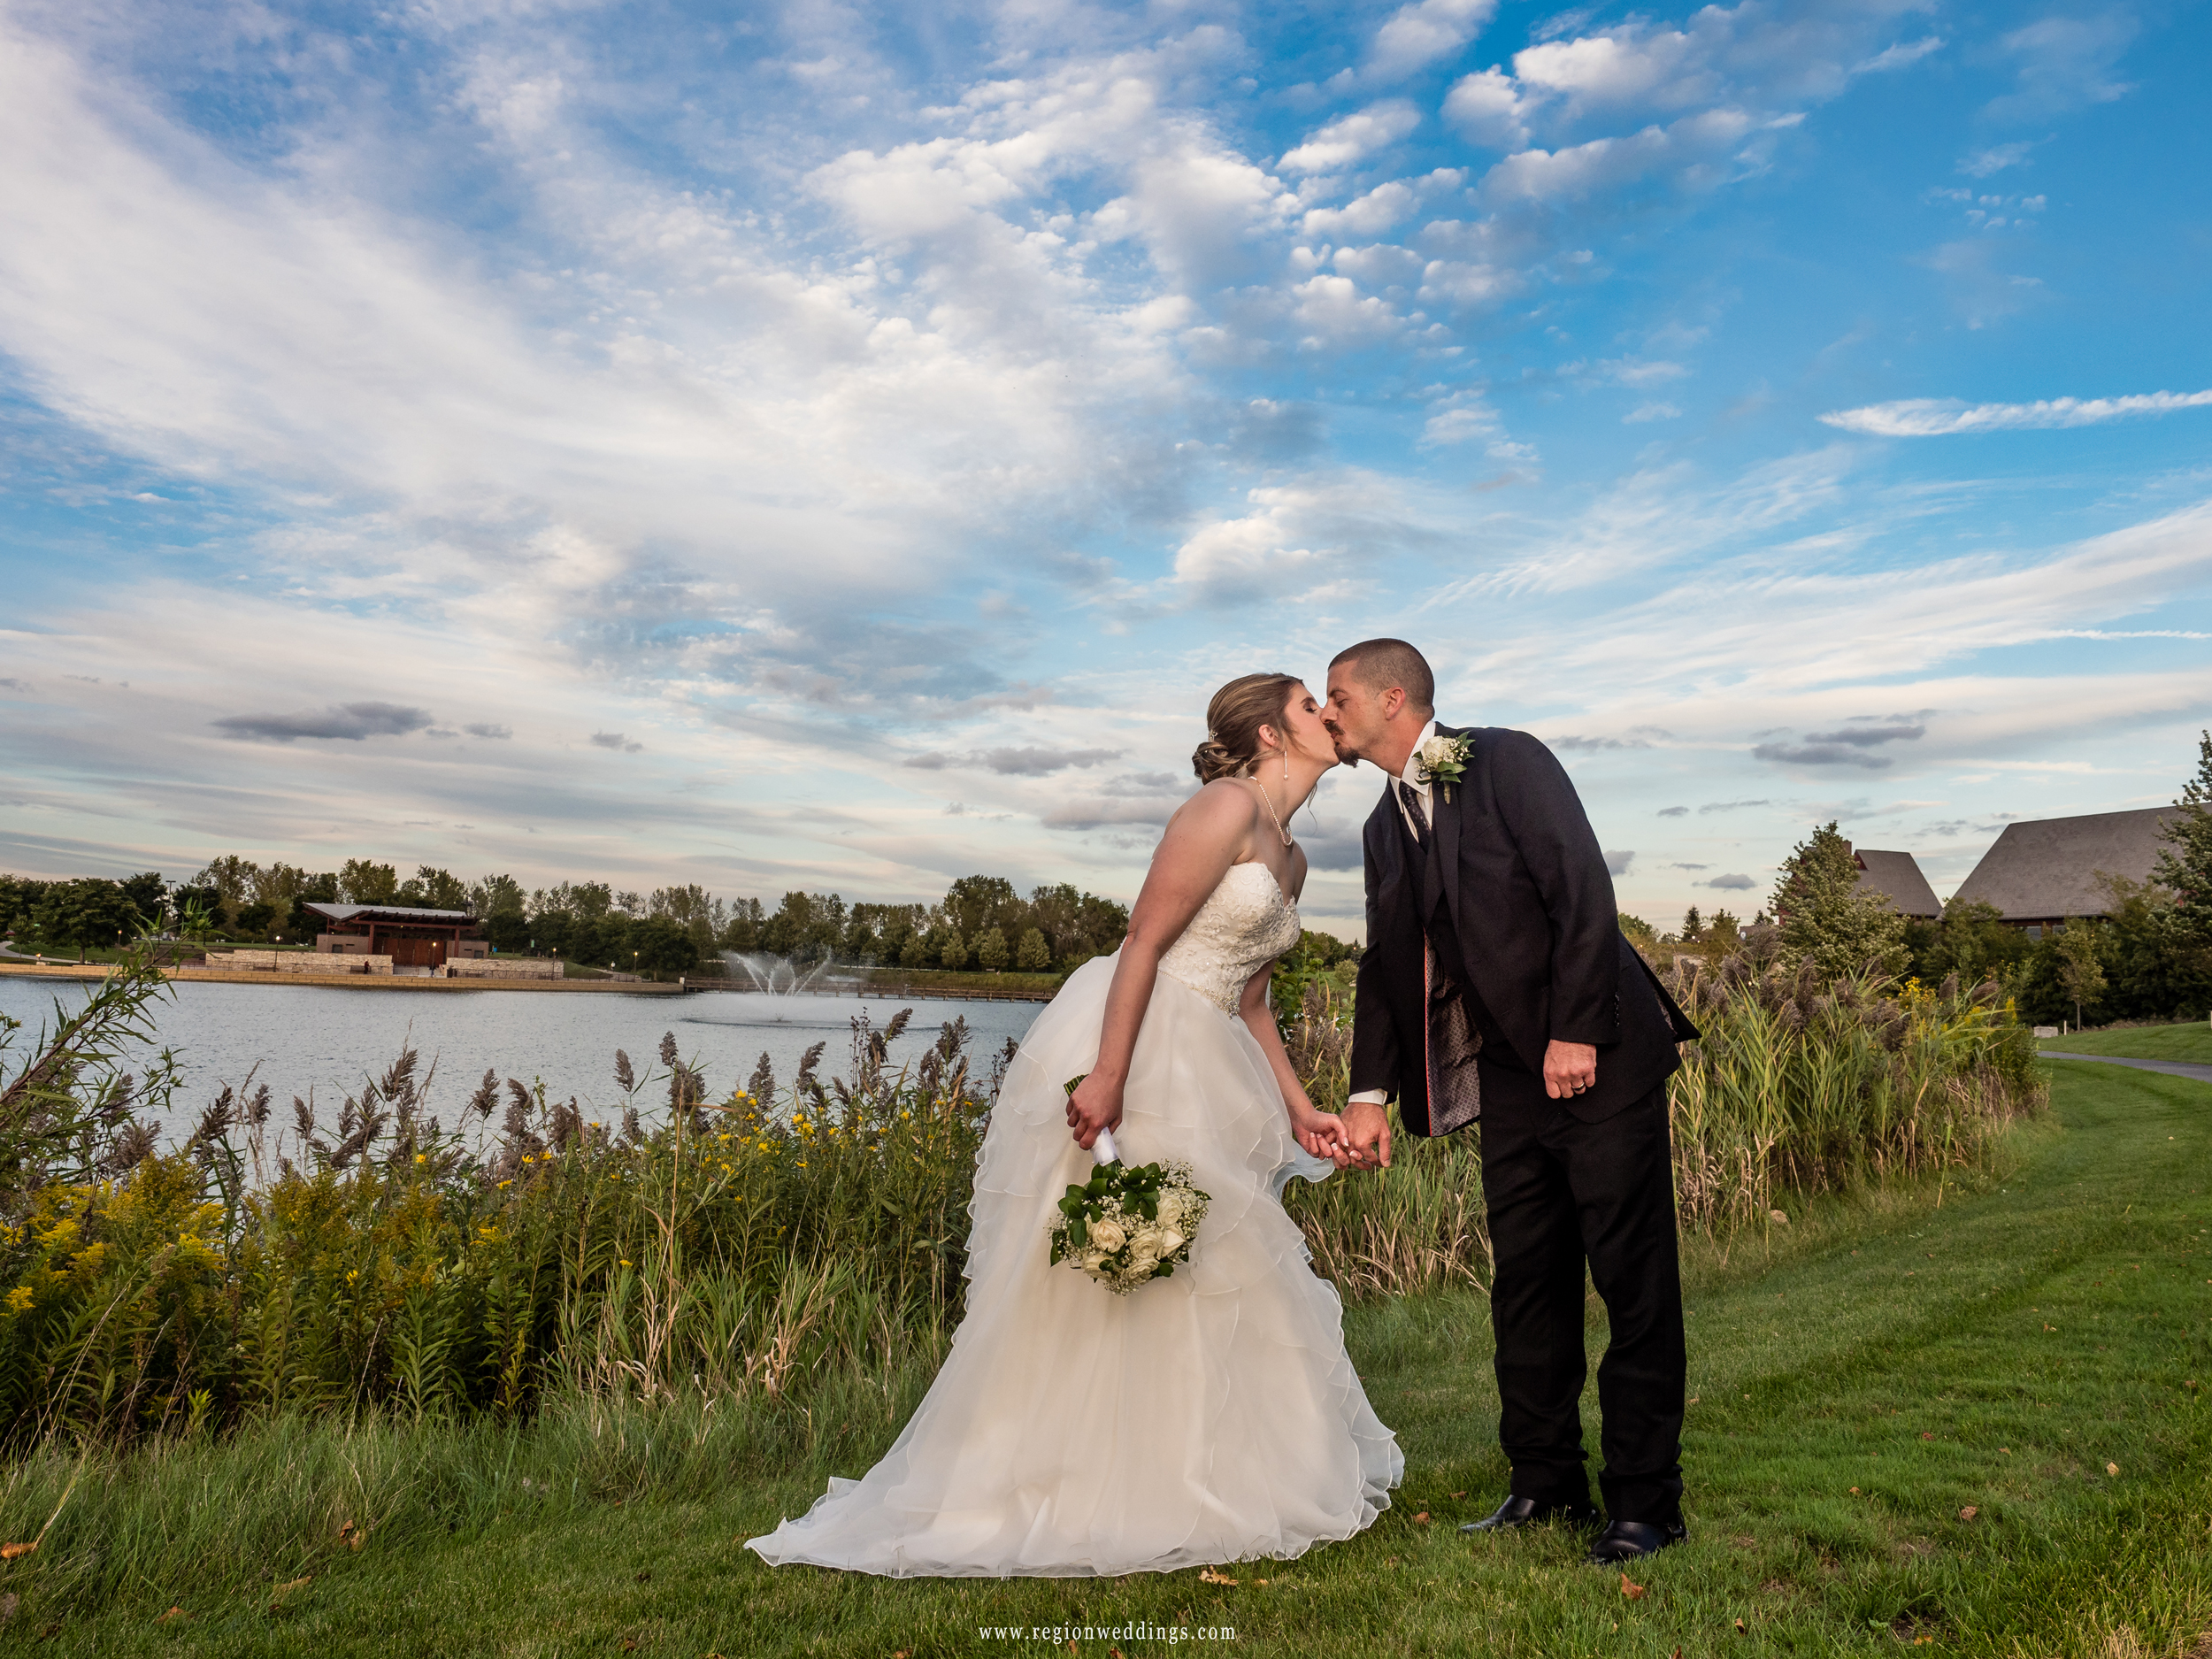 Bride and groom kiss under deep blue skies at Centennial park.